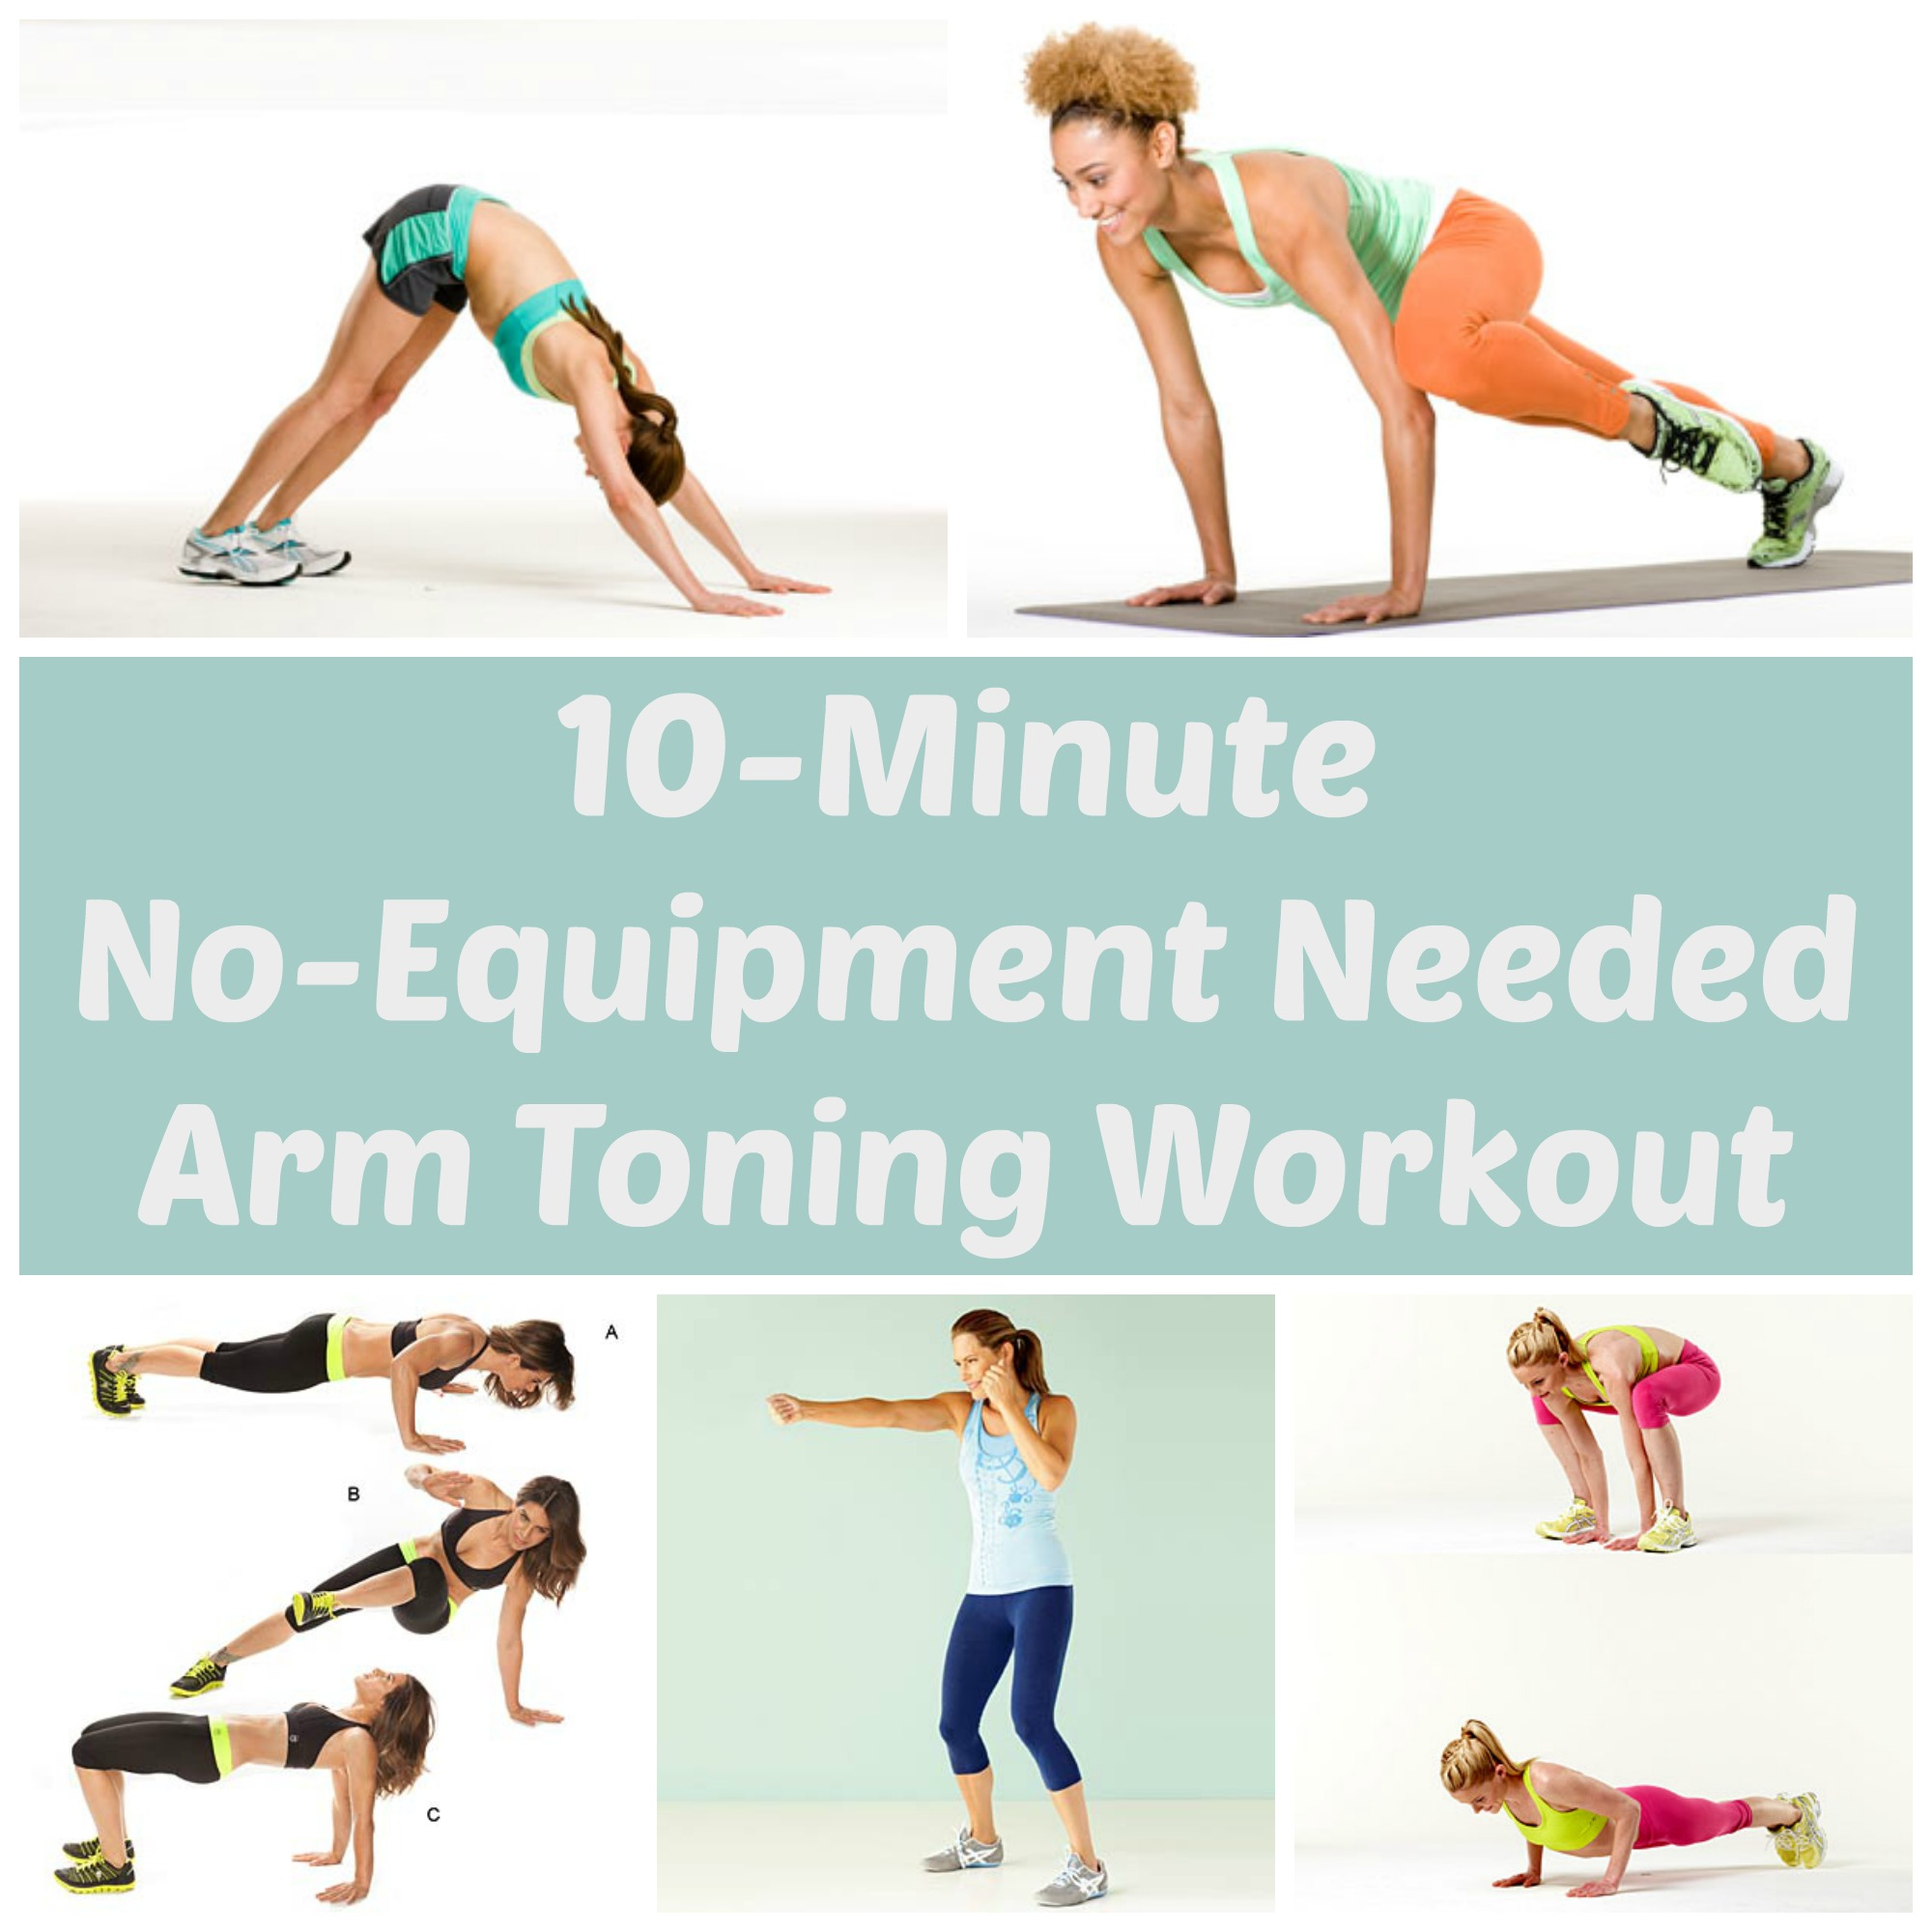 10-minute-no-equipment-arm-toning-workout.jpg